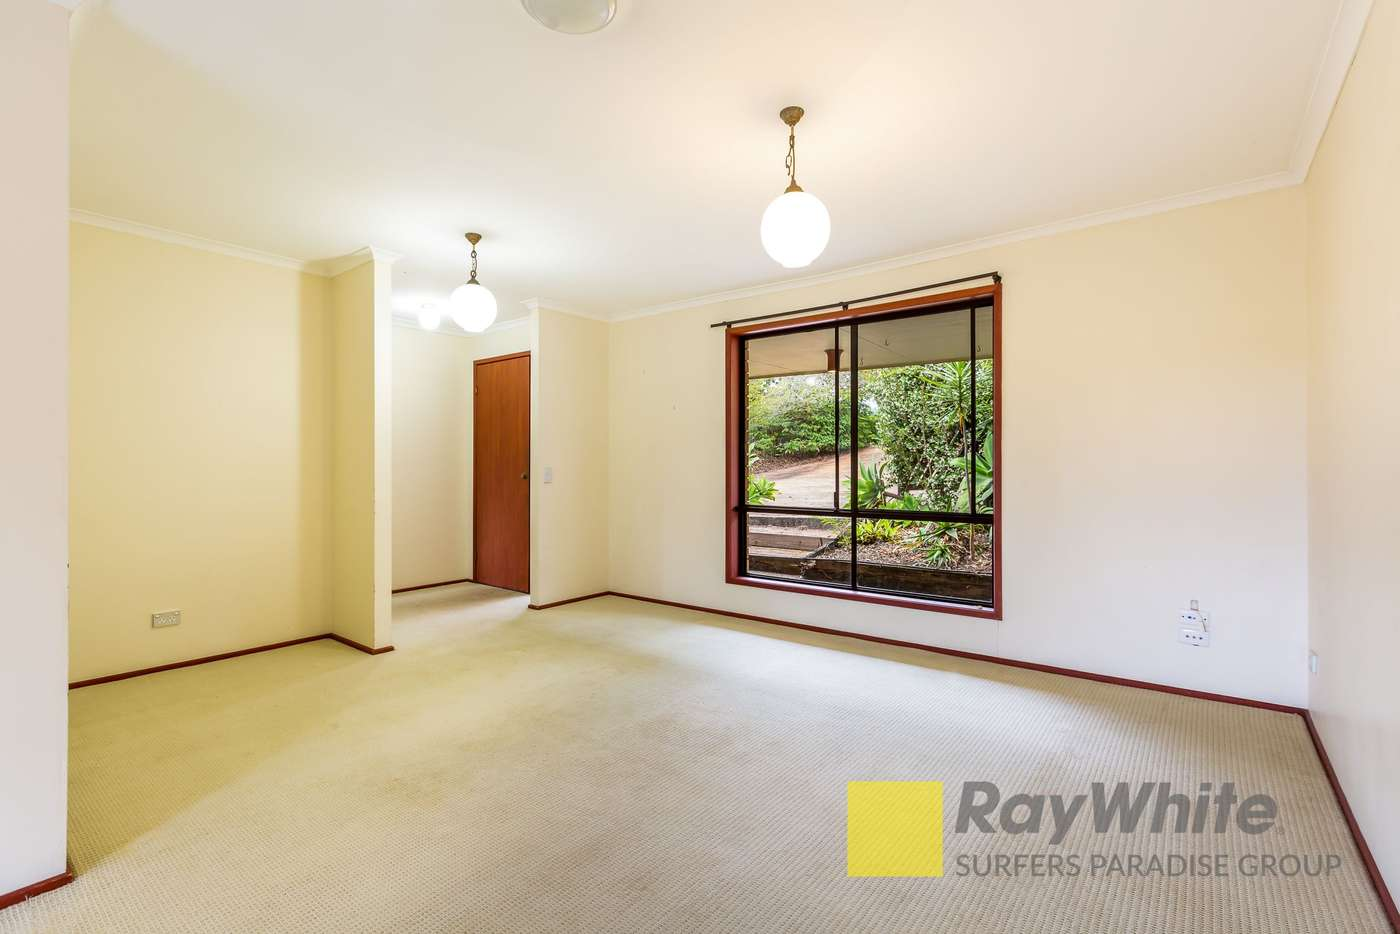 Seventh view of Homely house listing, 19 Tamworth Drive, Helensvale QLD 4212